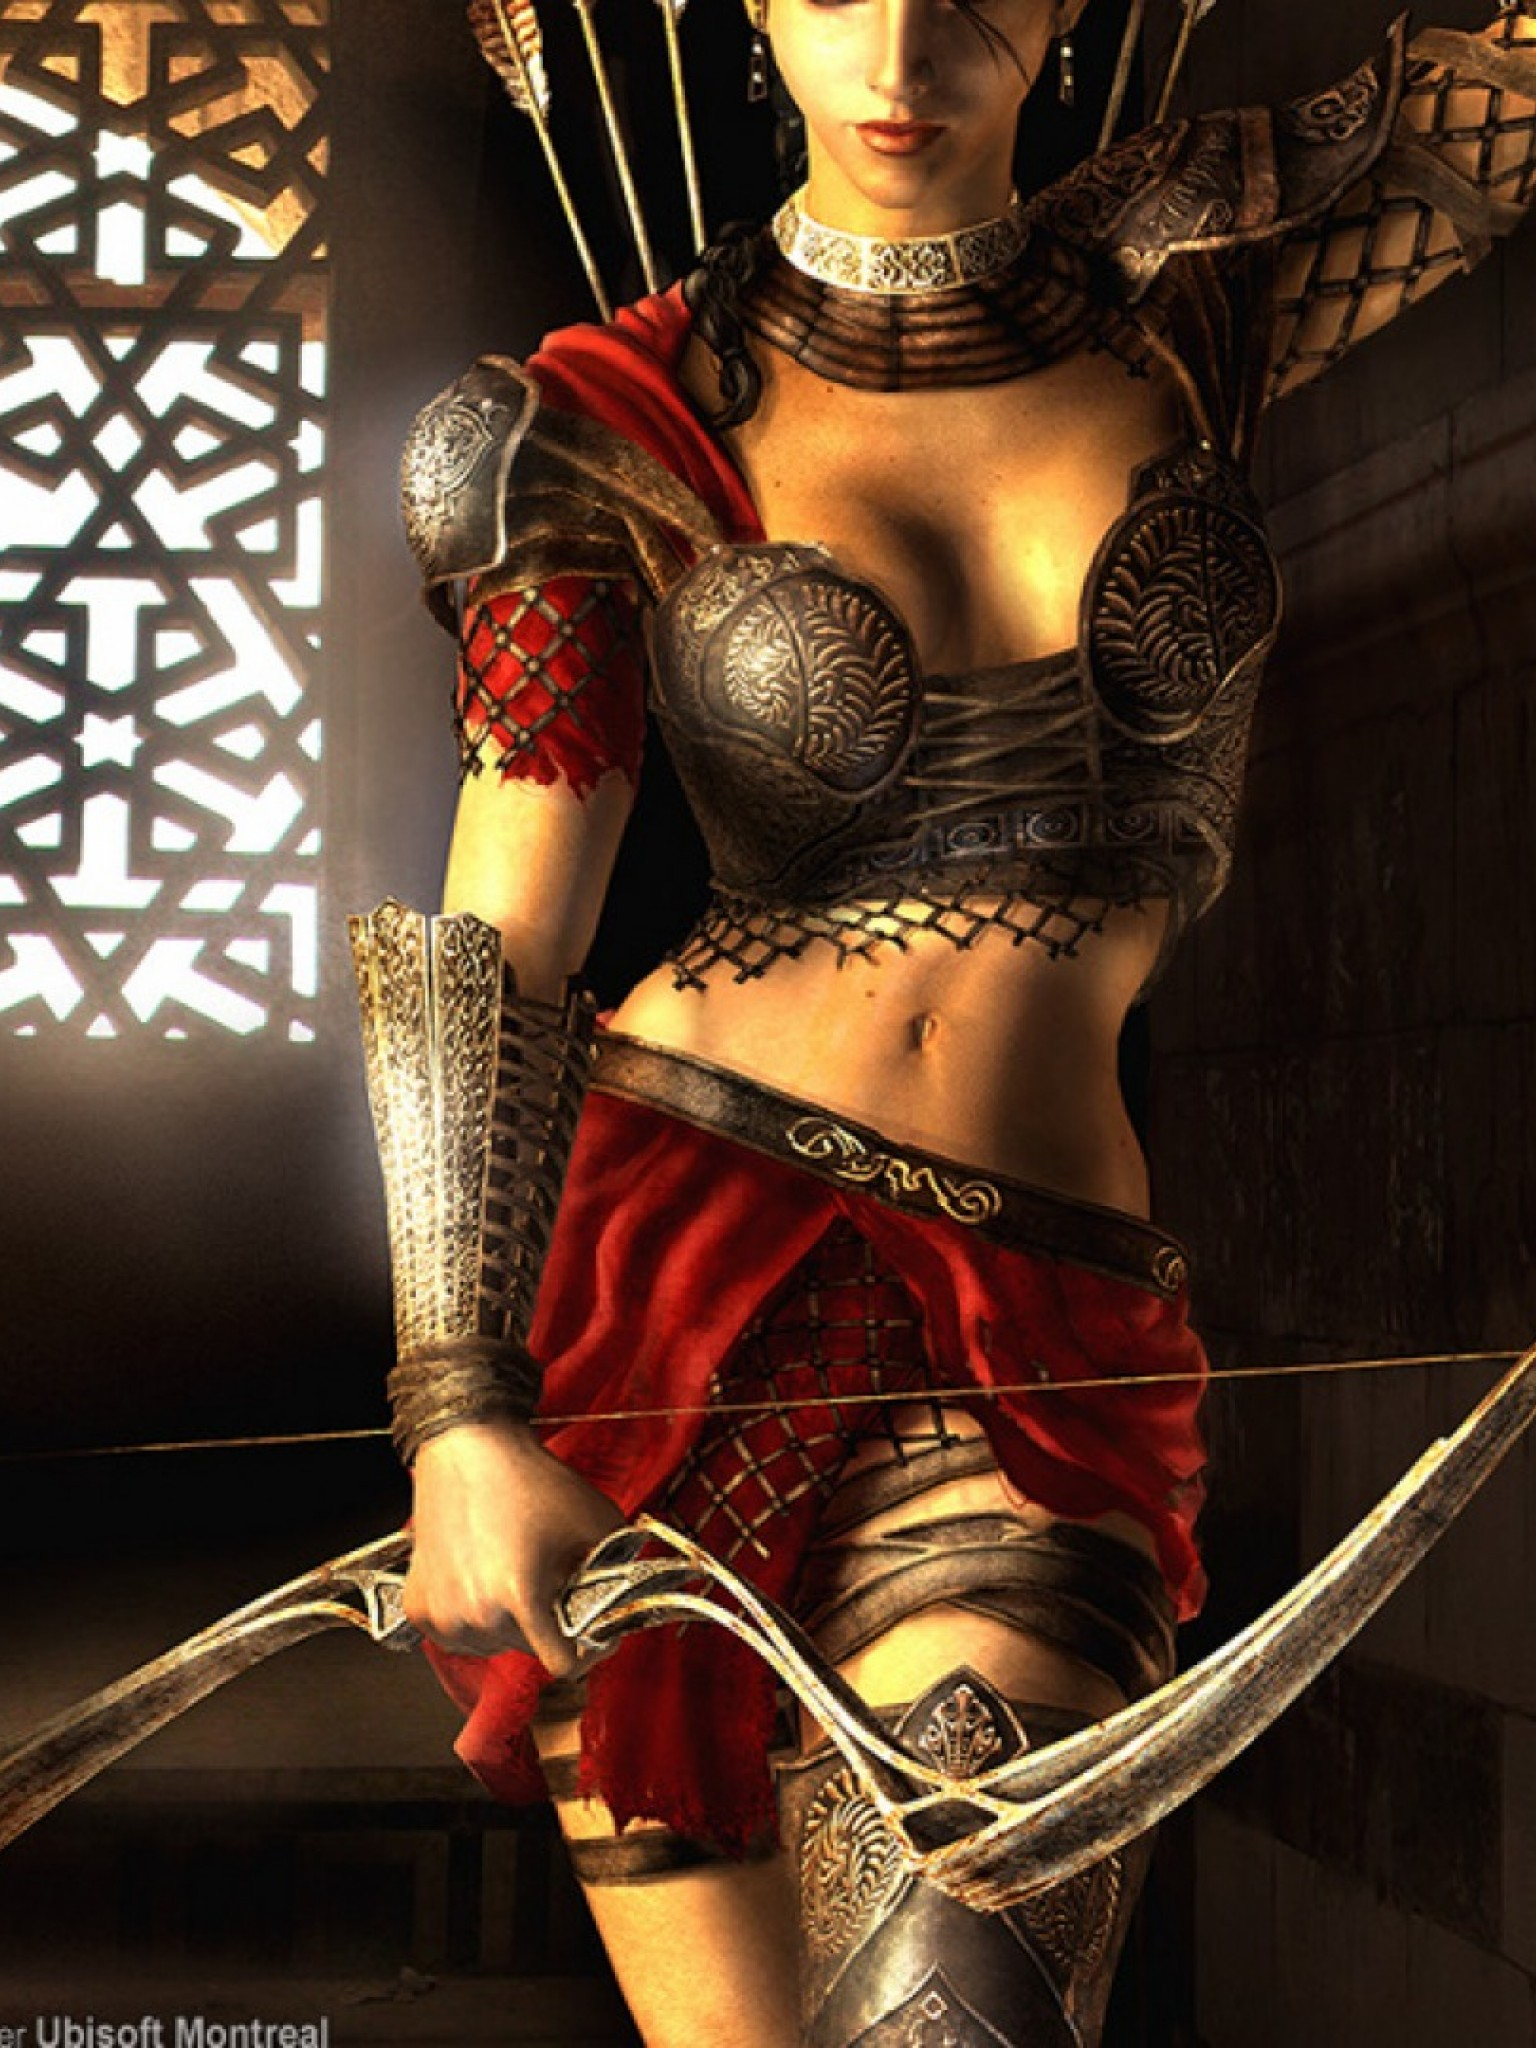 Prince of persia sex naked full hq images nsfw comics